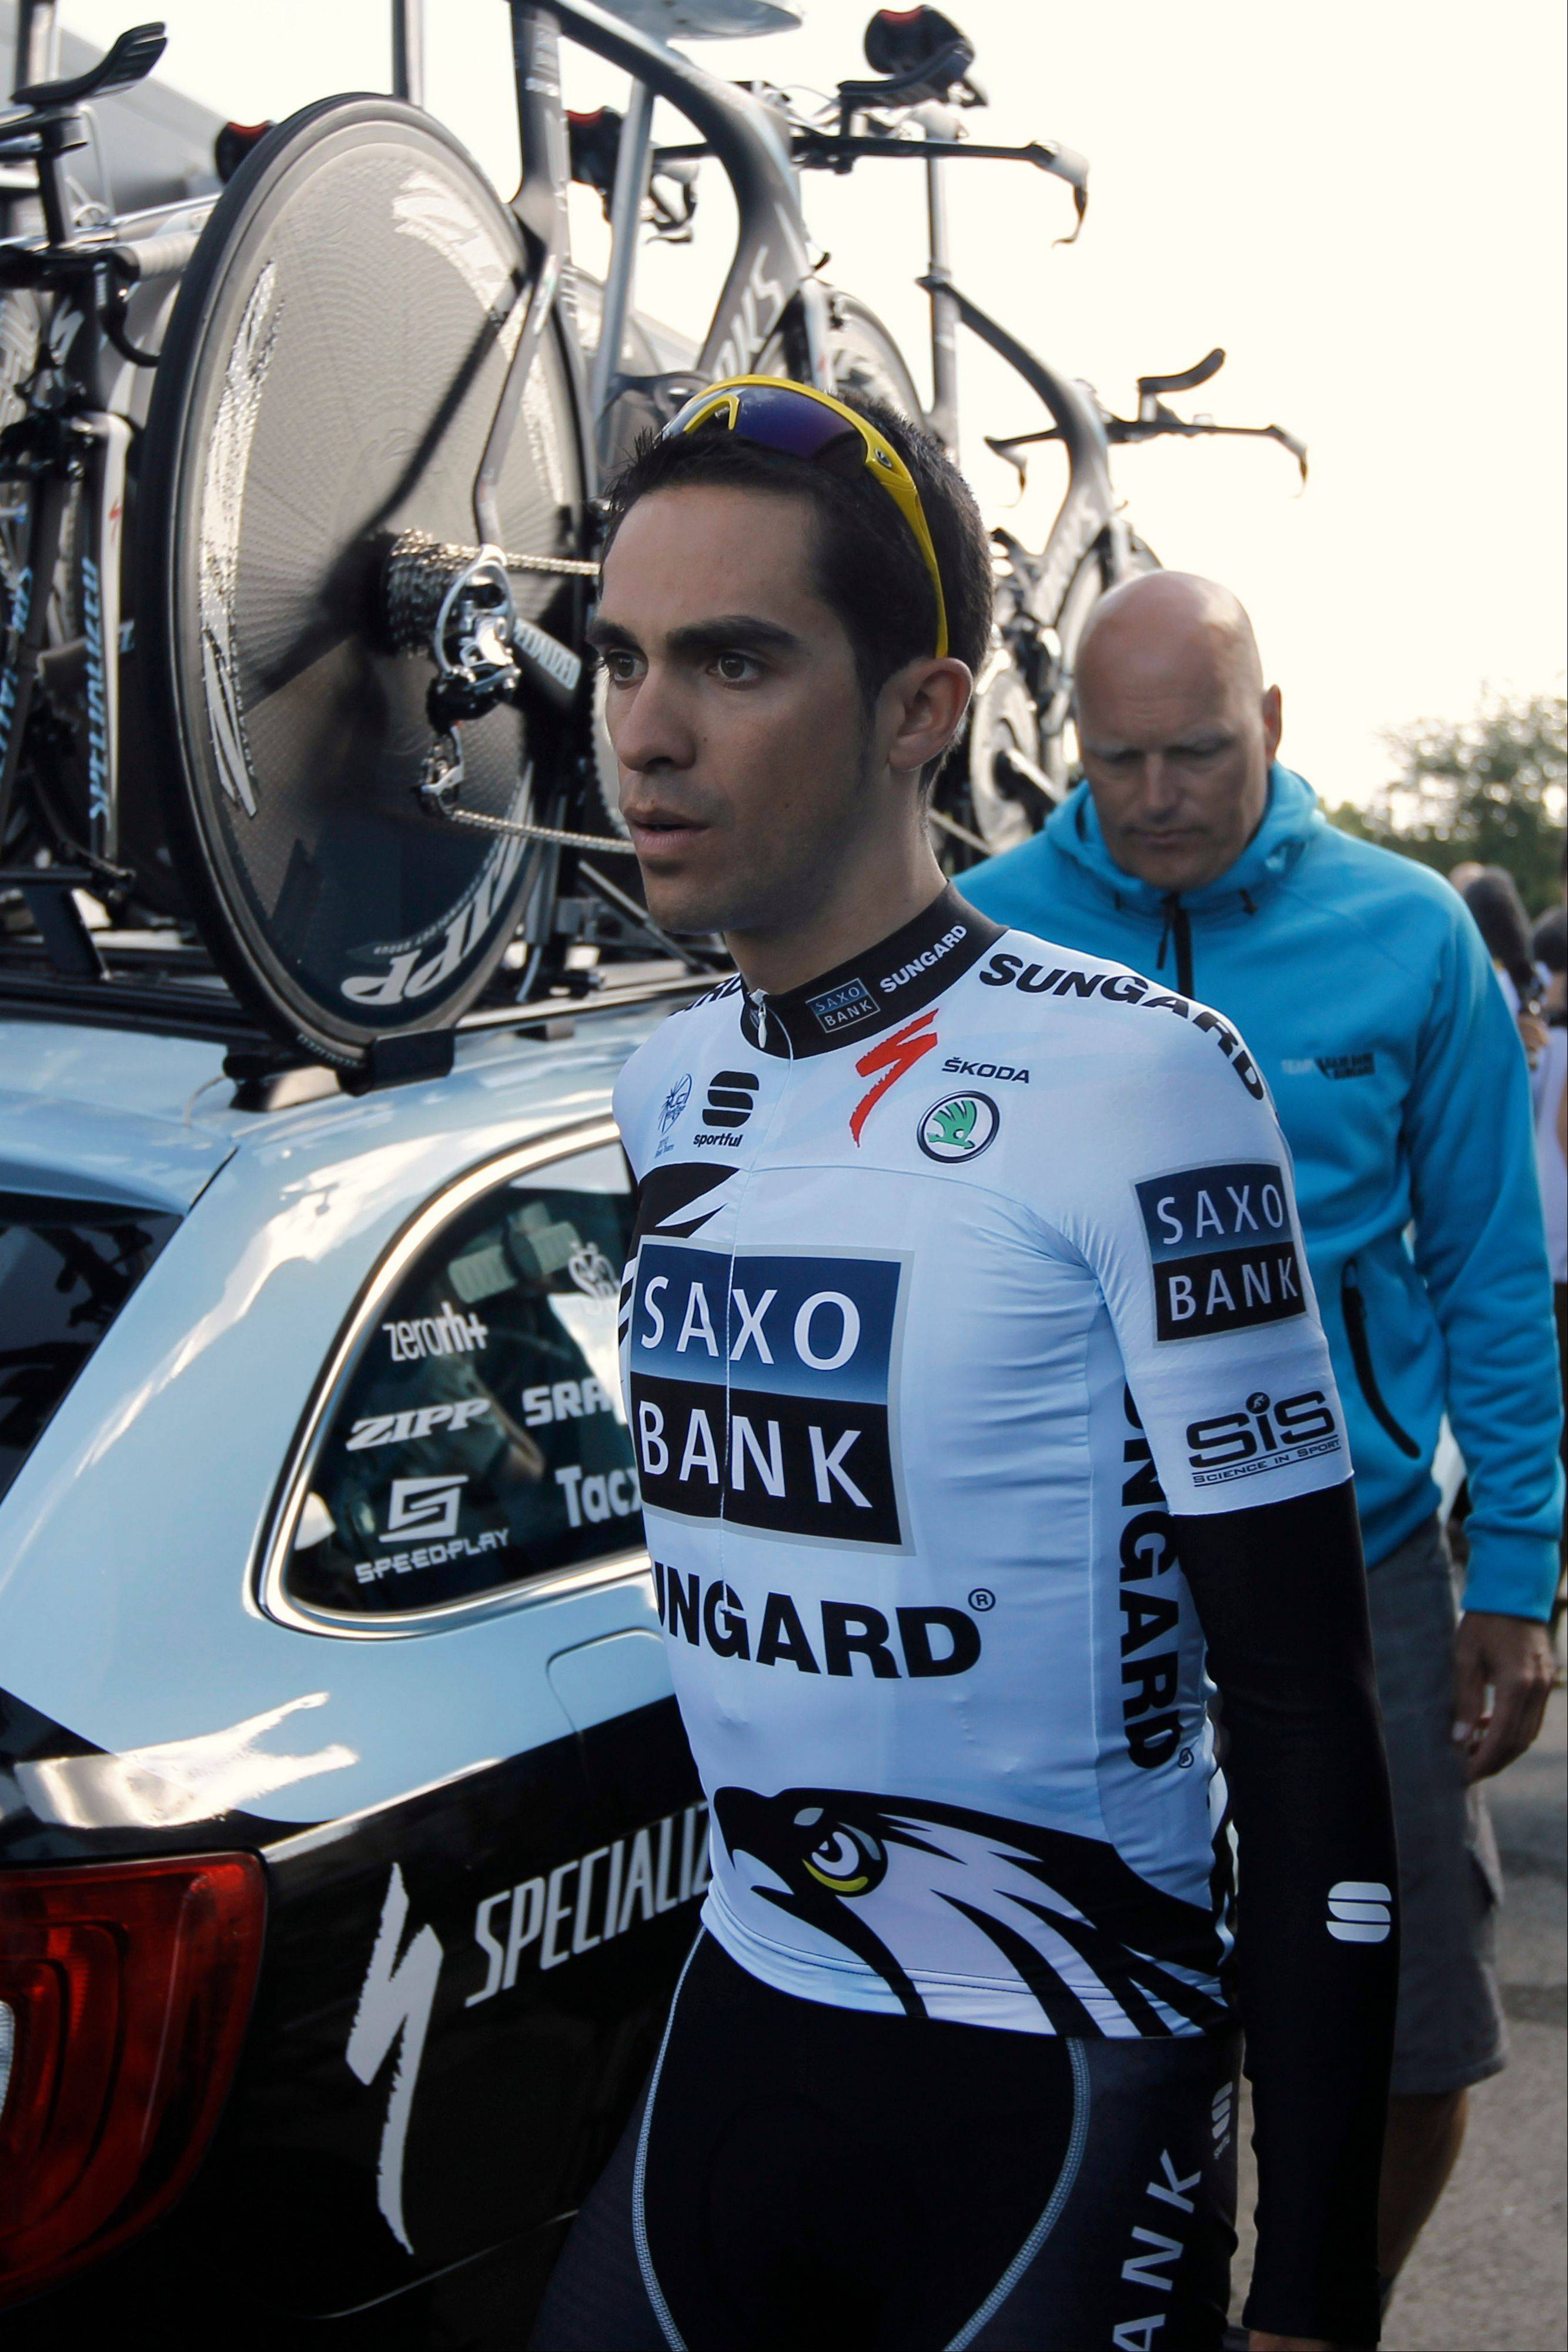 Alberto Contador leaves for a training ride near Les Herbiers, western France, on Thursday. The Tour de France starts on Saturday. Contador, the event's defending champion, is at the center of an ongoing doping case.